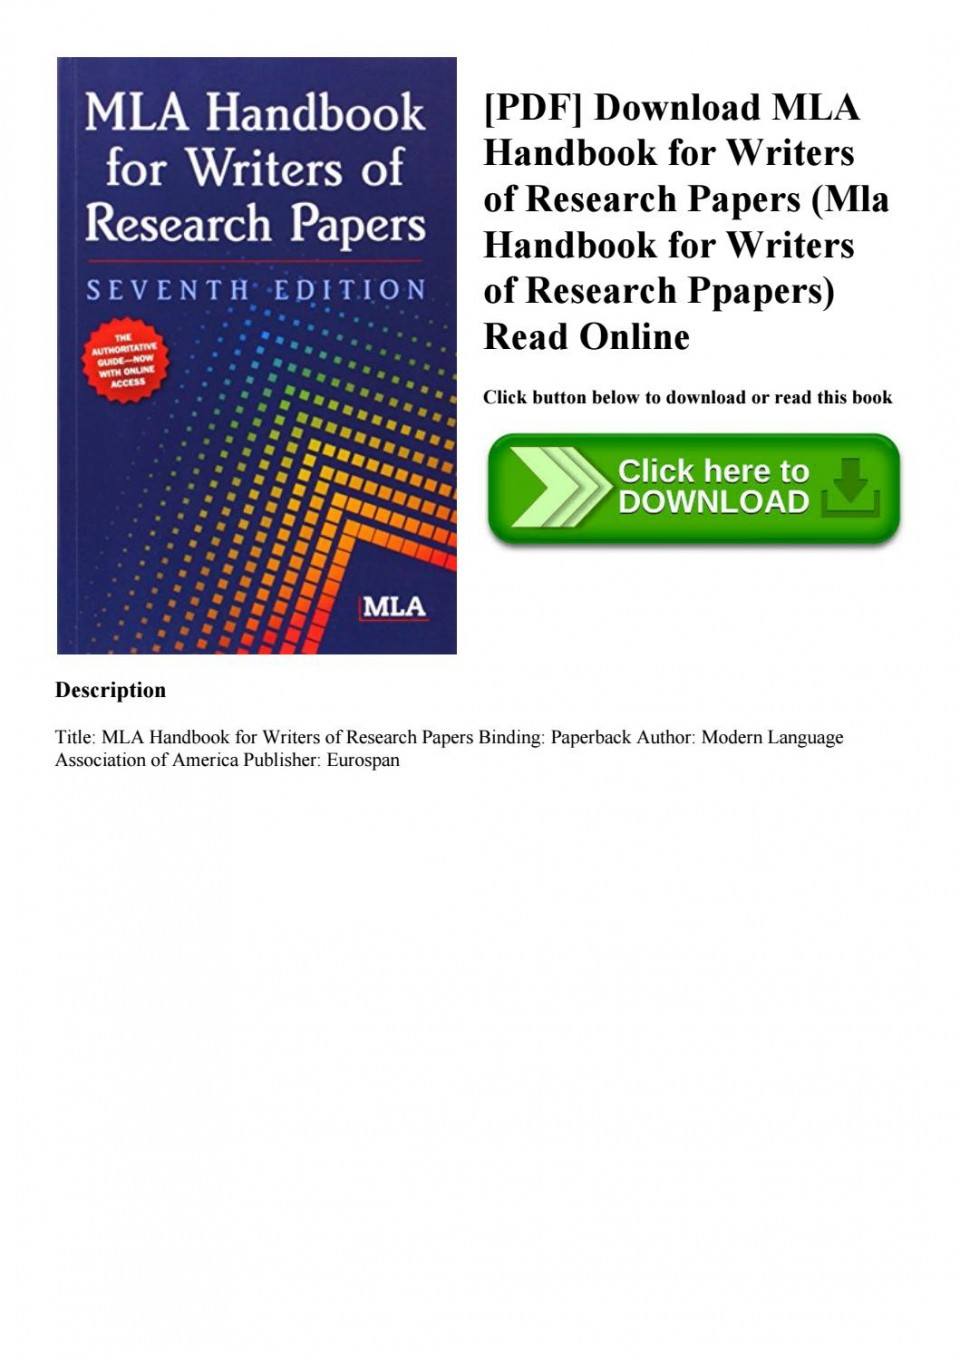 001 Mla Handbook For Writing Research Papers Pdf Paper Page 1 Beautiful Writers Of 5th Edition 7th Free Download 960